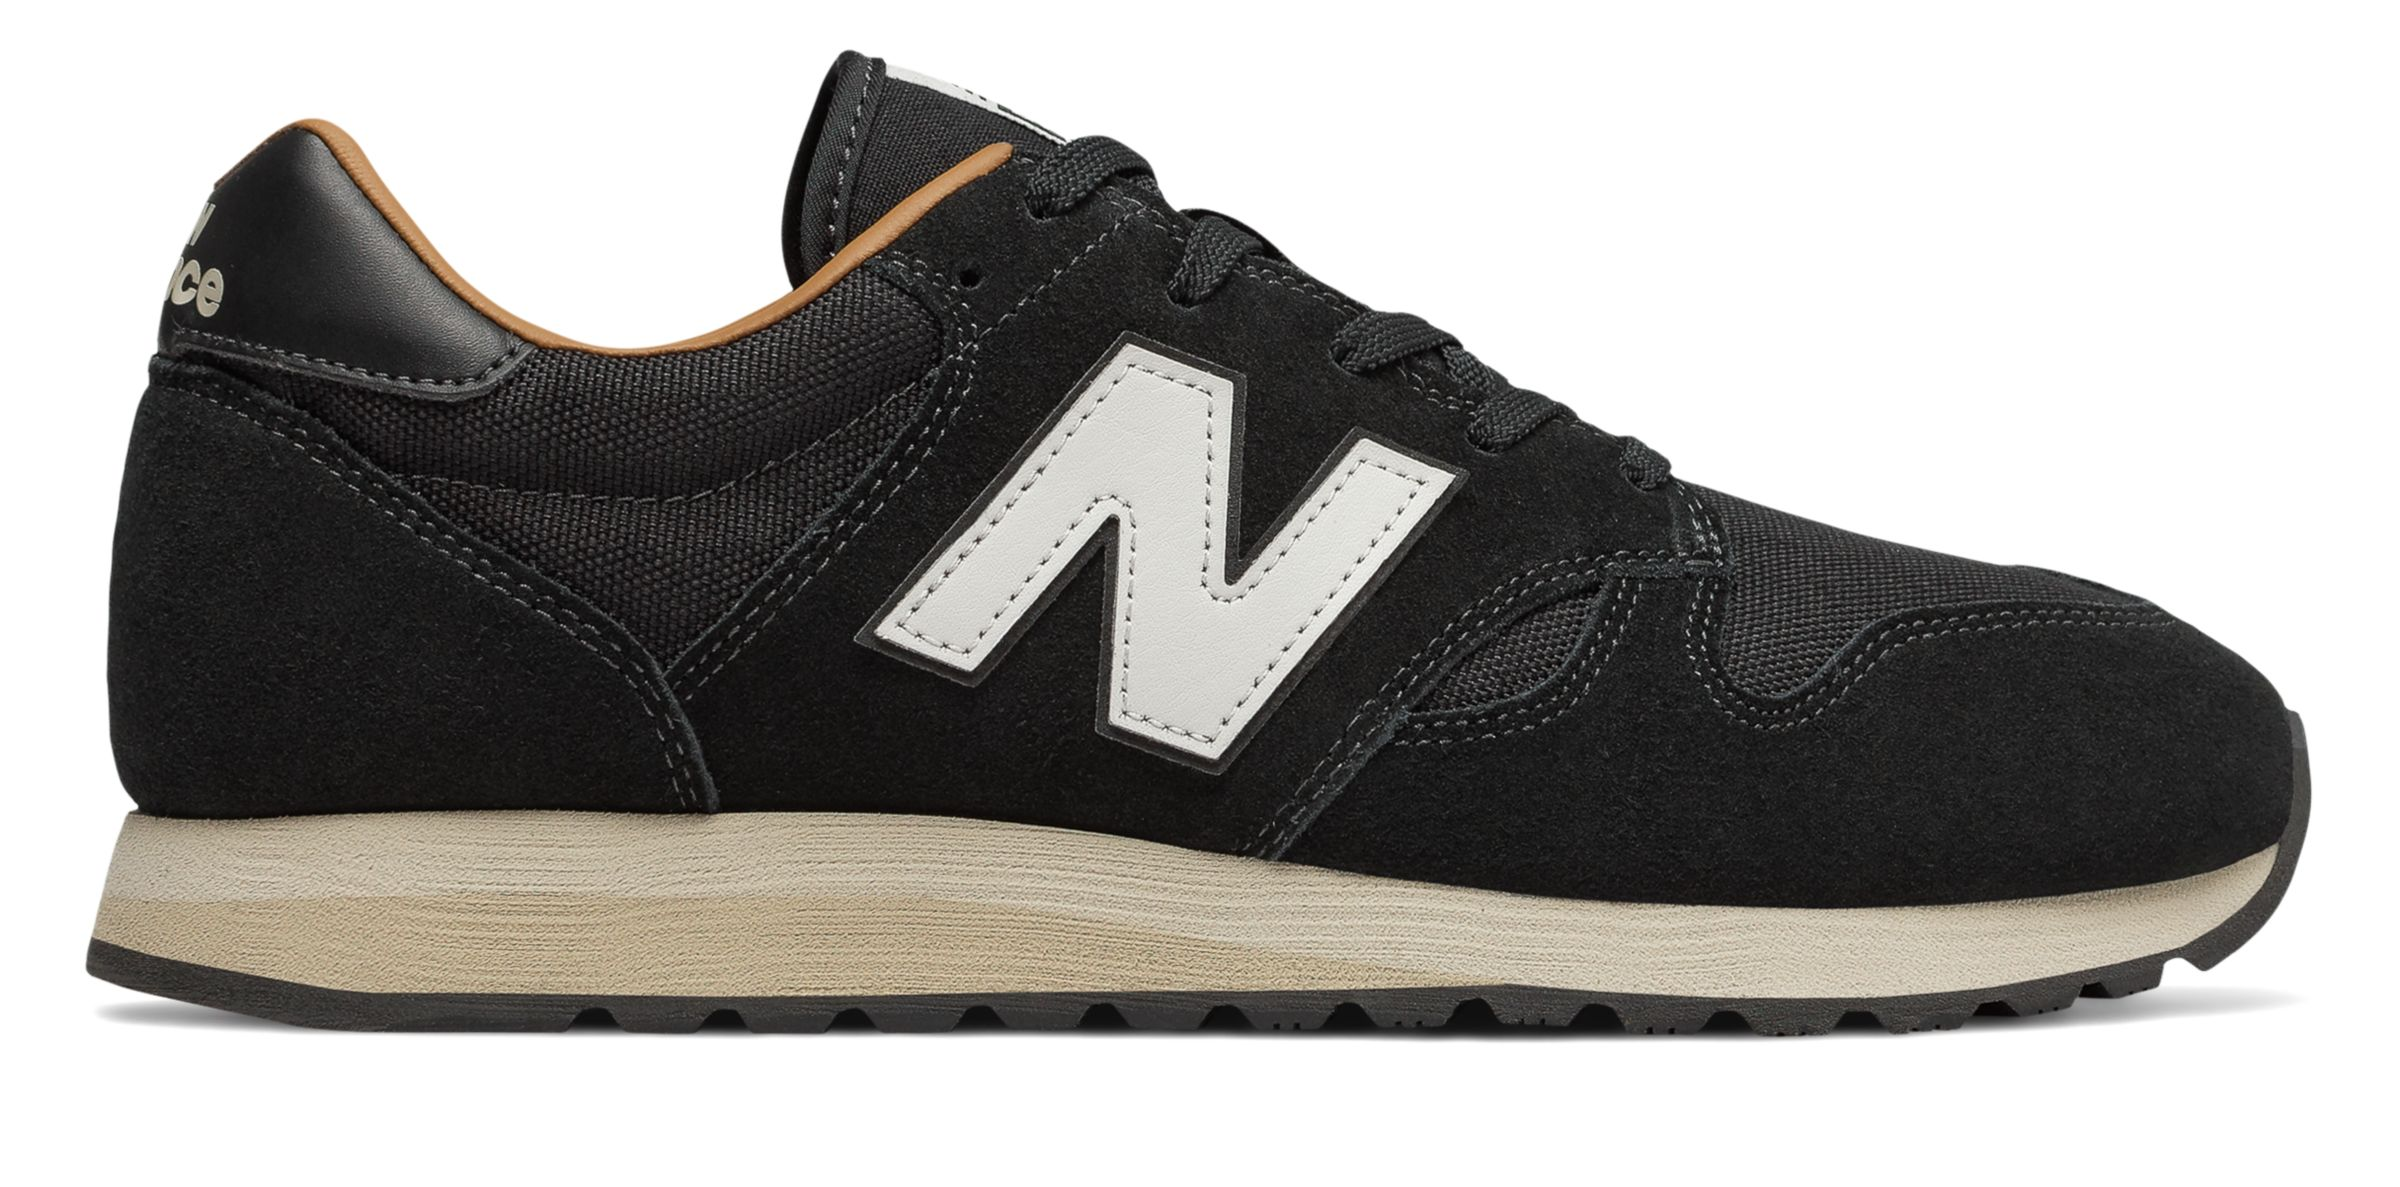 joes new balance outlet promo code cheap new balance 574